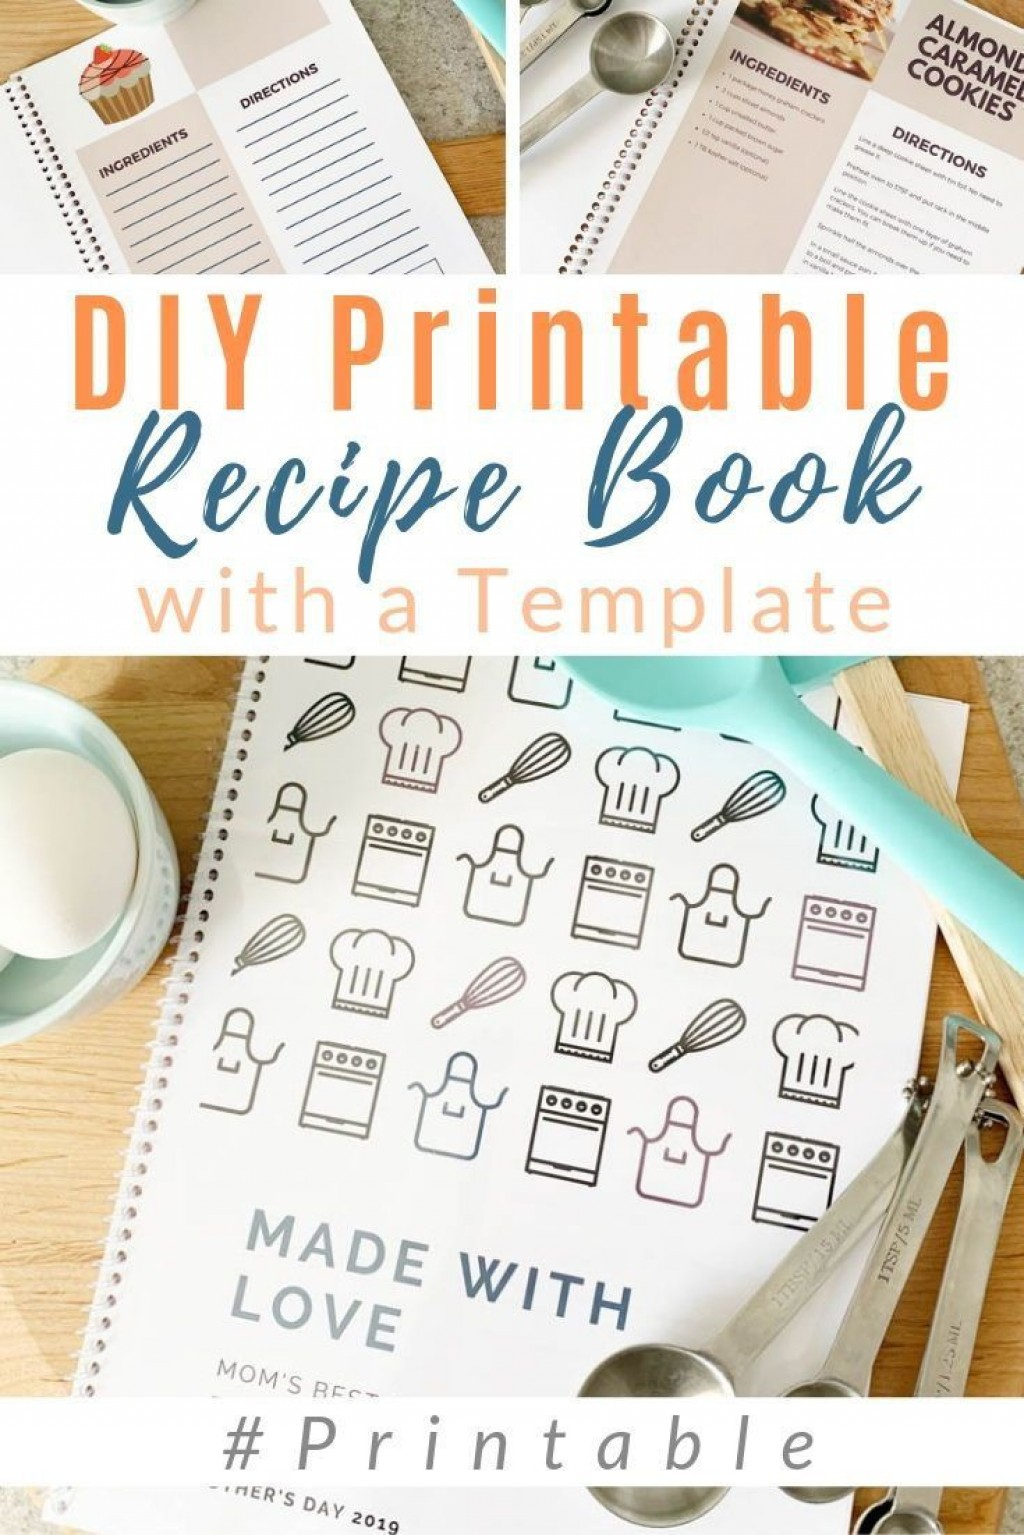 002 Fascinating Make Your Own Cookbook Template Free Photo  DownloadLarge